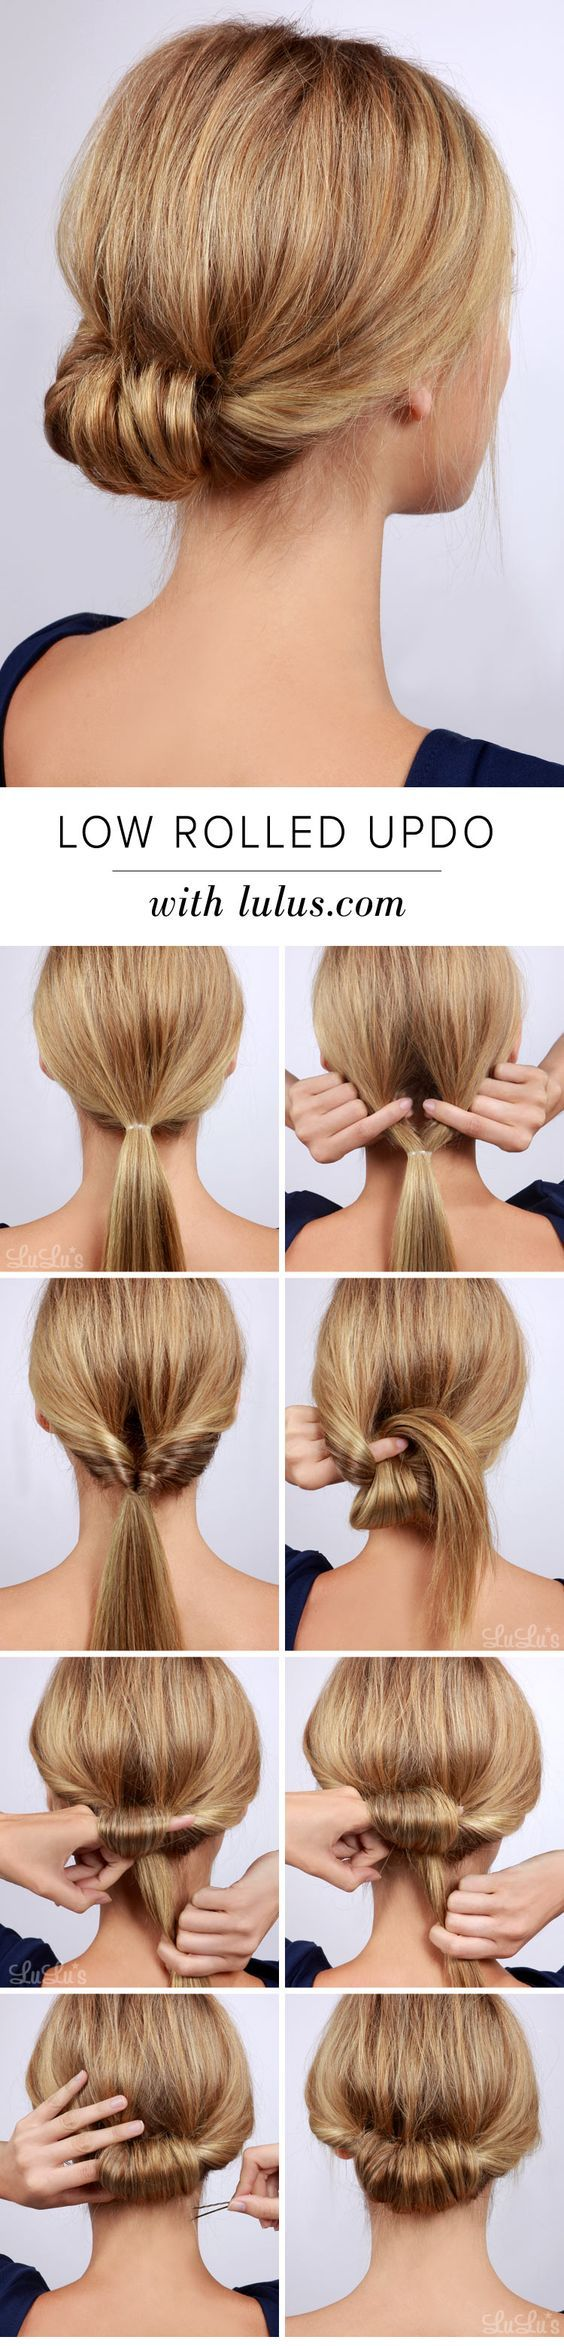 easy hairstyles for any and all lazy girls low rolled updo